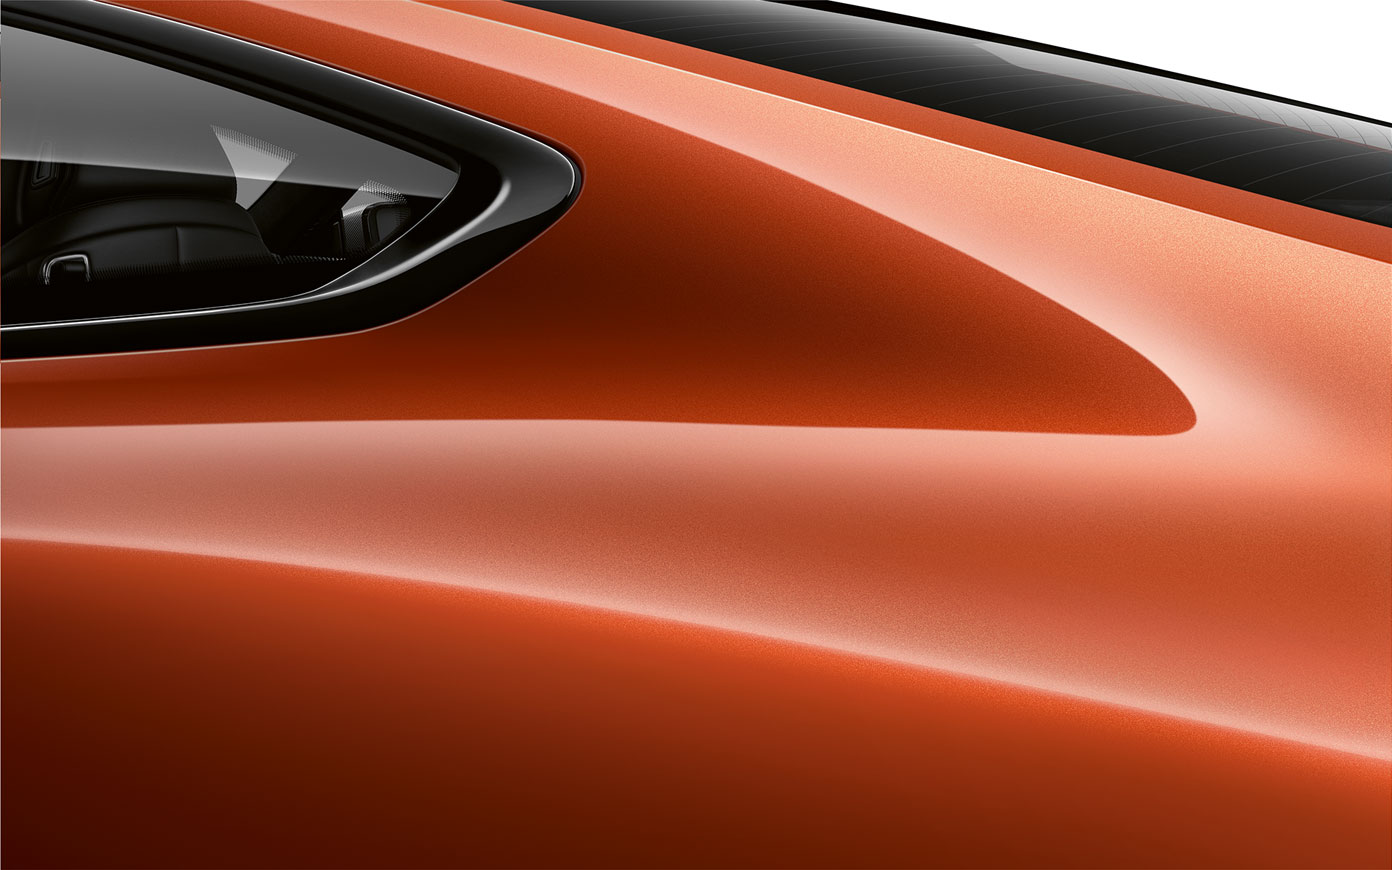 Detalle del pilar trasero del BMW Serie 8 Coupé en color Sunset Orange metalizado.